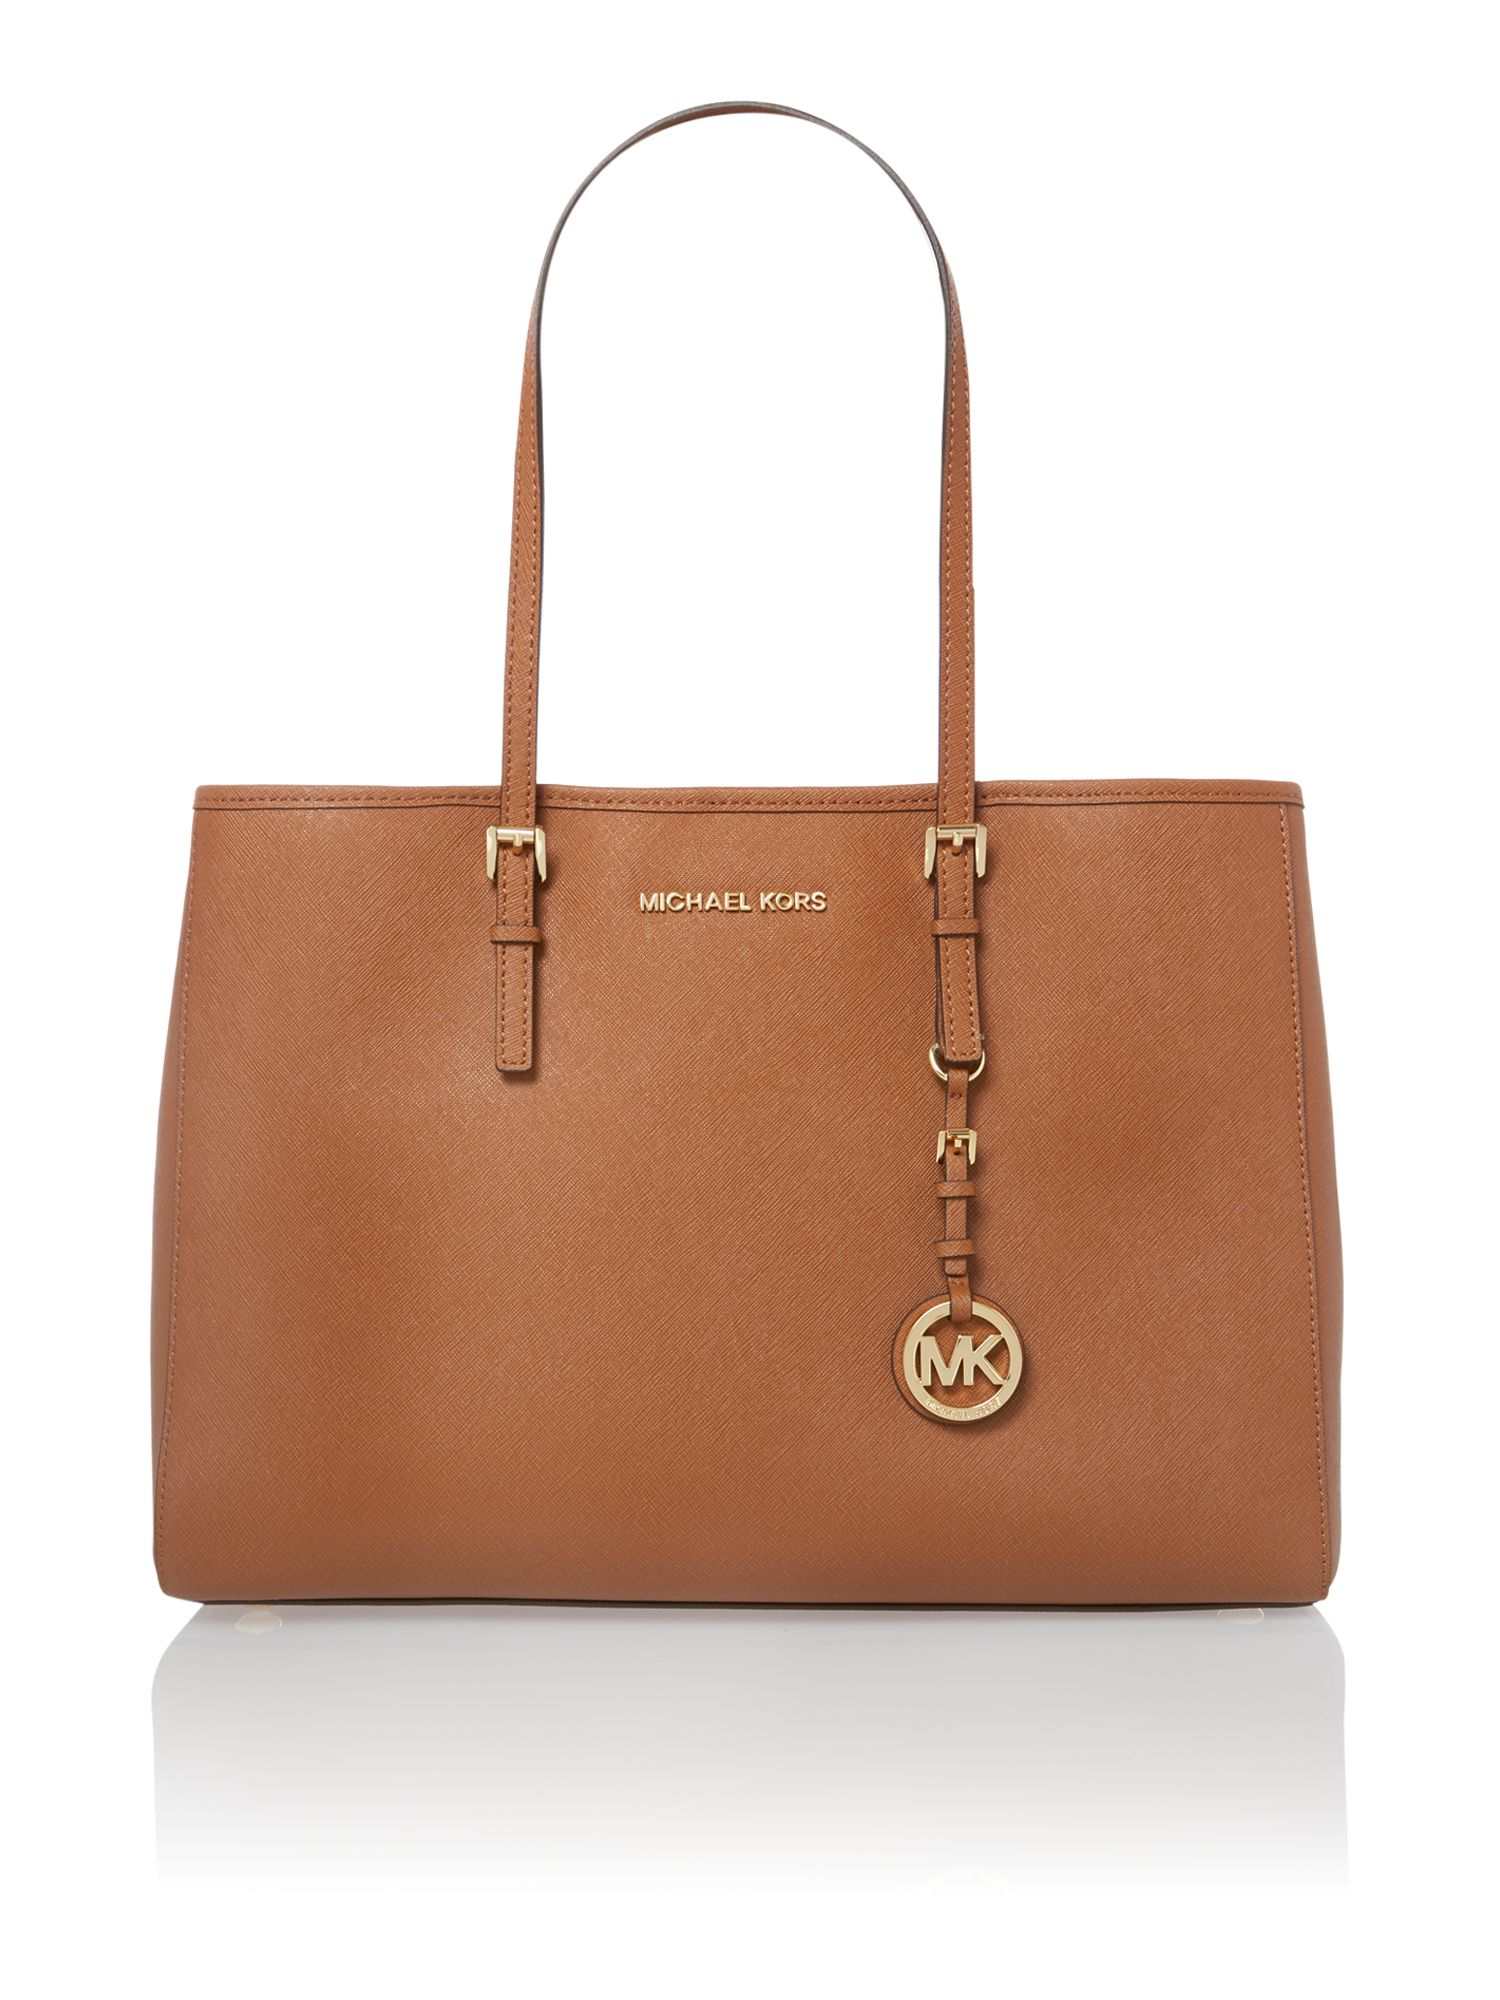 Jet Set Travel tan medium tote bag